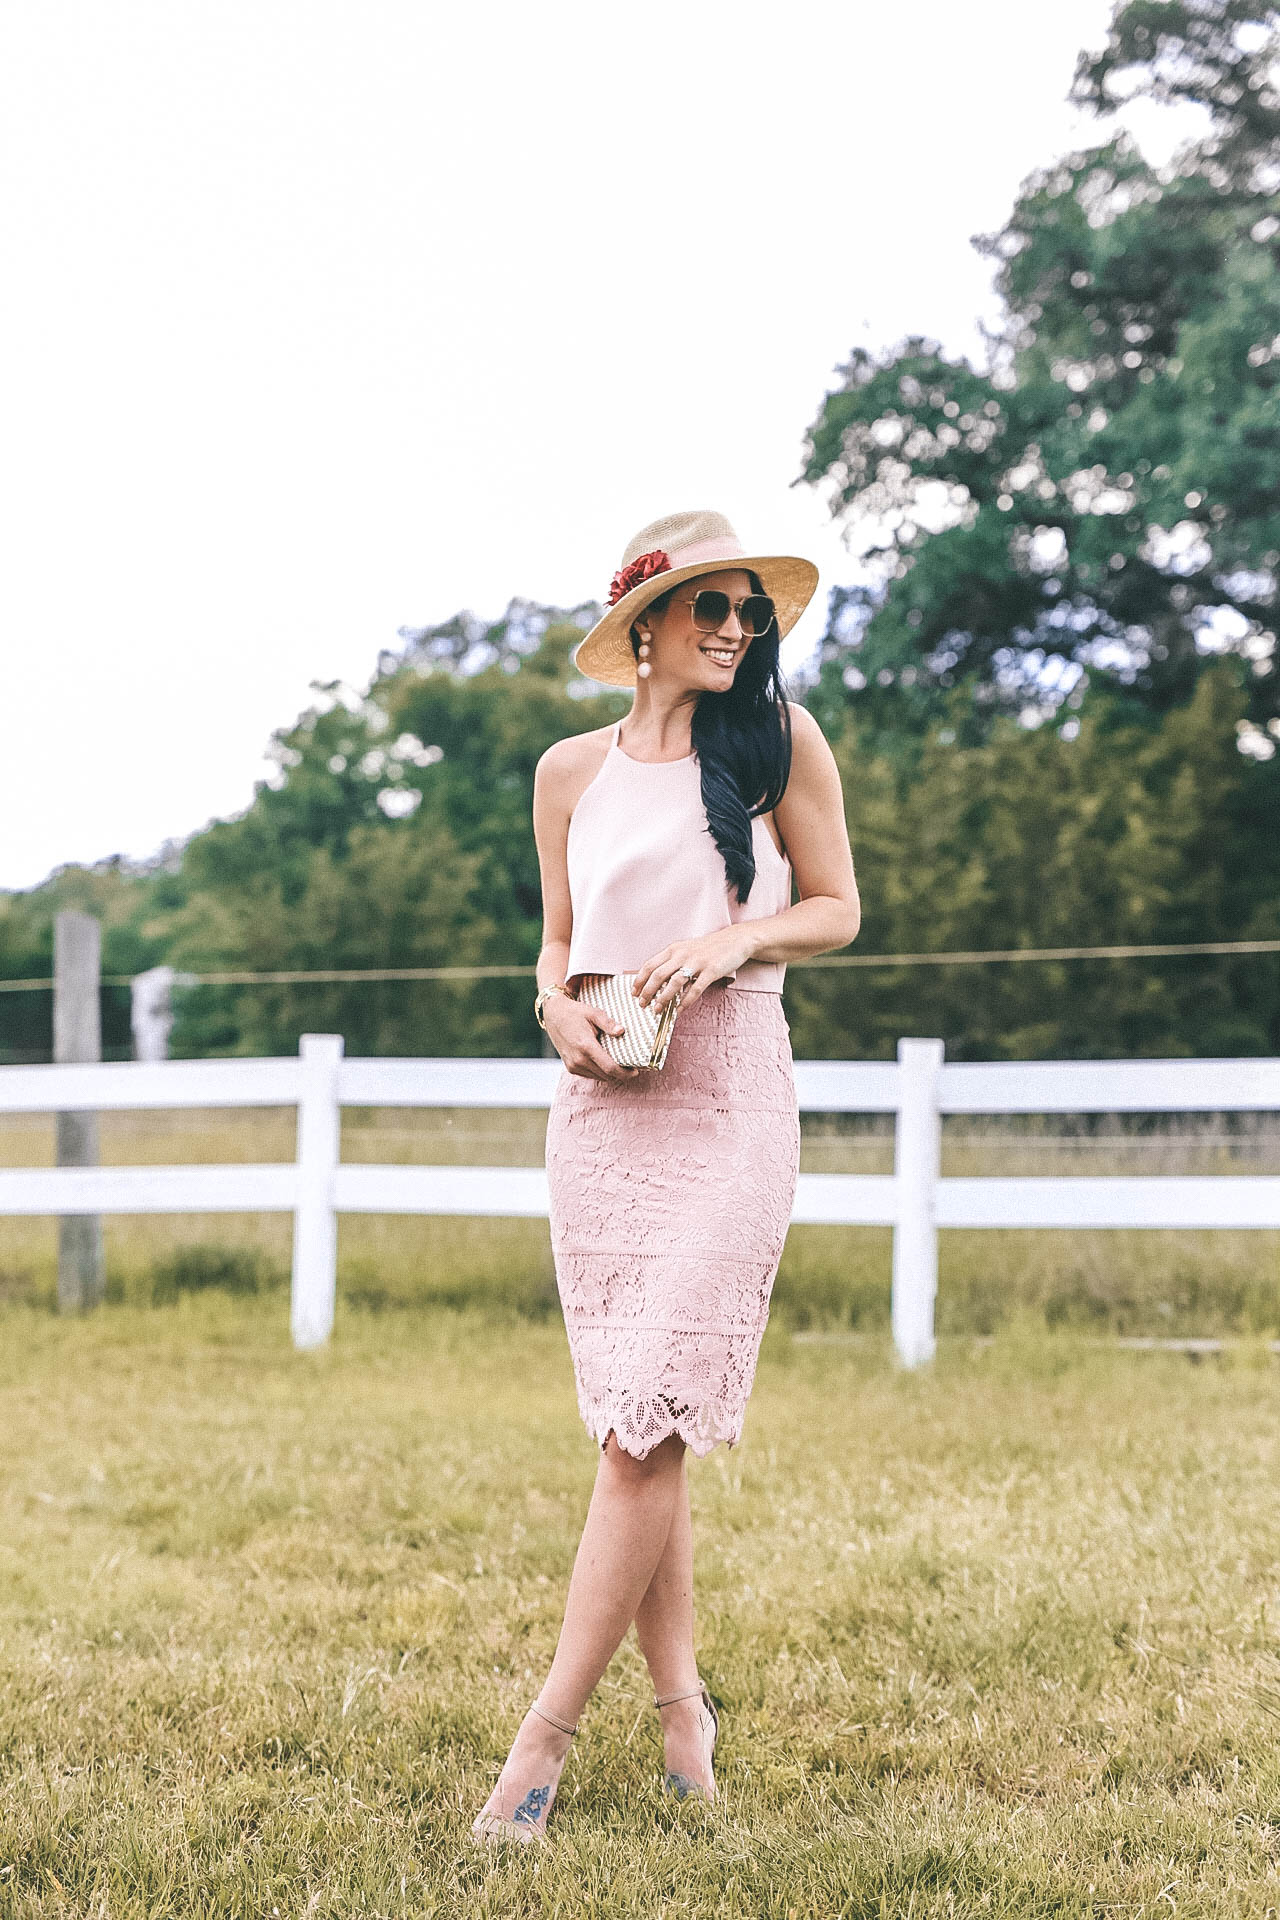 DTKAustin shares three of her favorite Kentucky Derby inspired looks. Whether you are going to a Derby party or the Derby itself, you are set with these fascinating hats and accessories. || Dressed to Kill #kentuckyderby #derby #derbylooks #kentuckyderbyhat #DIYDerbyHatWhat to Wear to a Kentucky Derby Party featured by popular Austin Fashion blogger, Dressed to Kill.